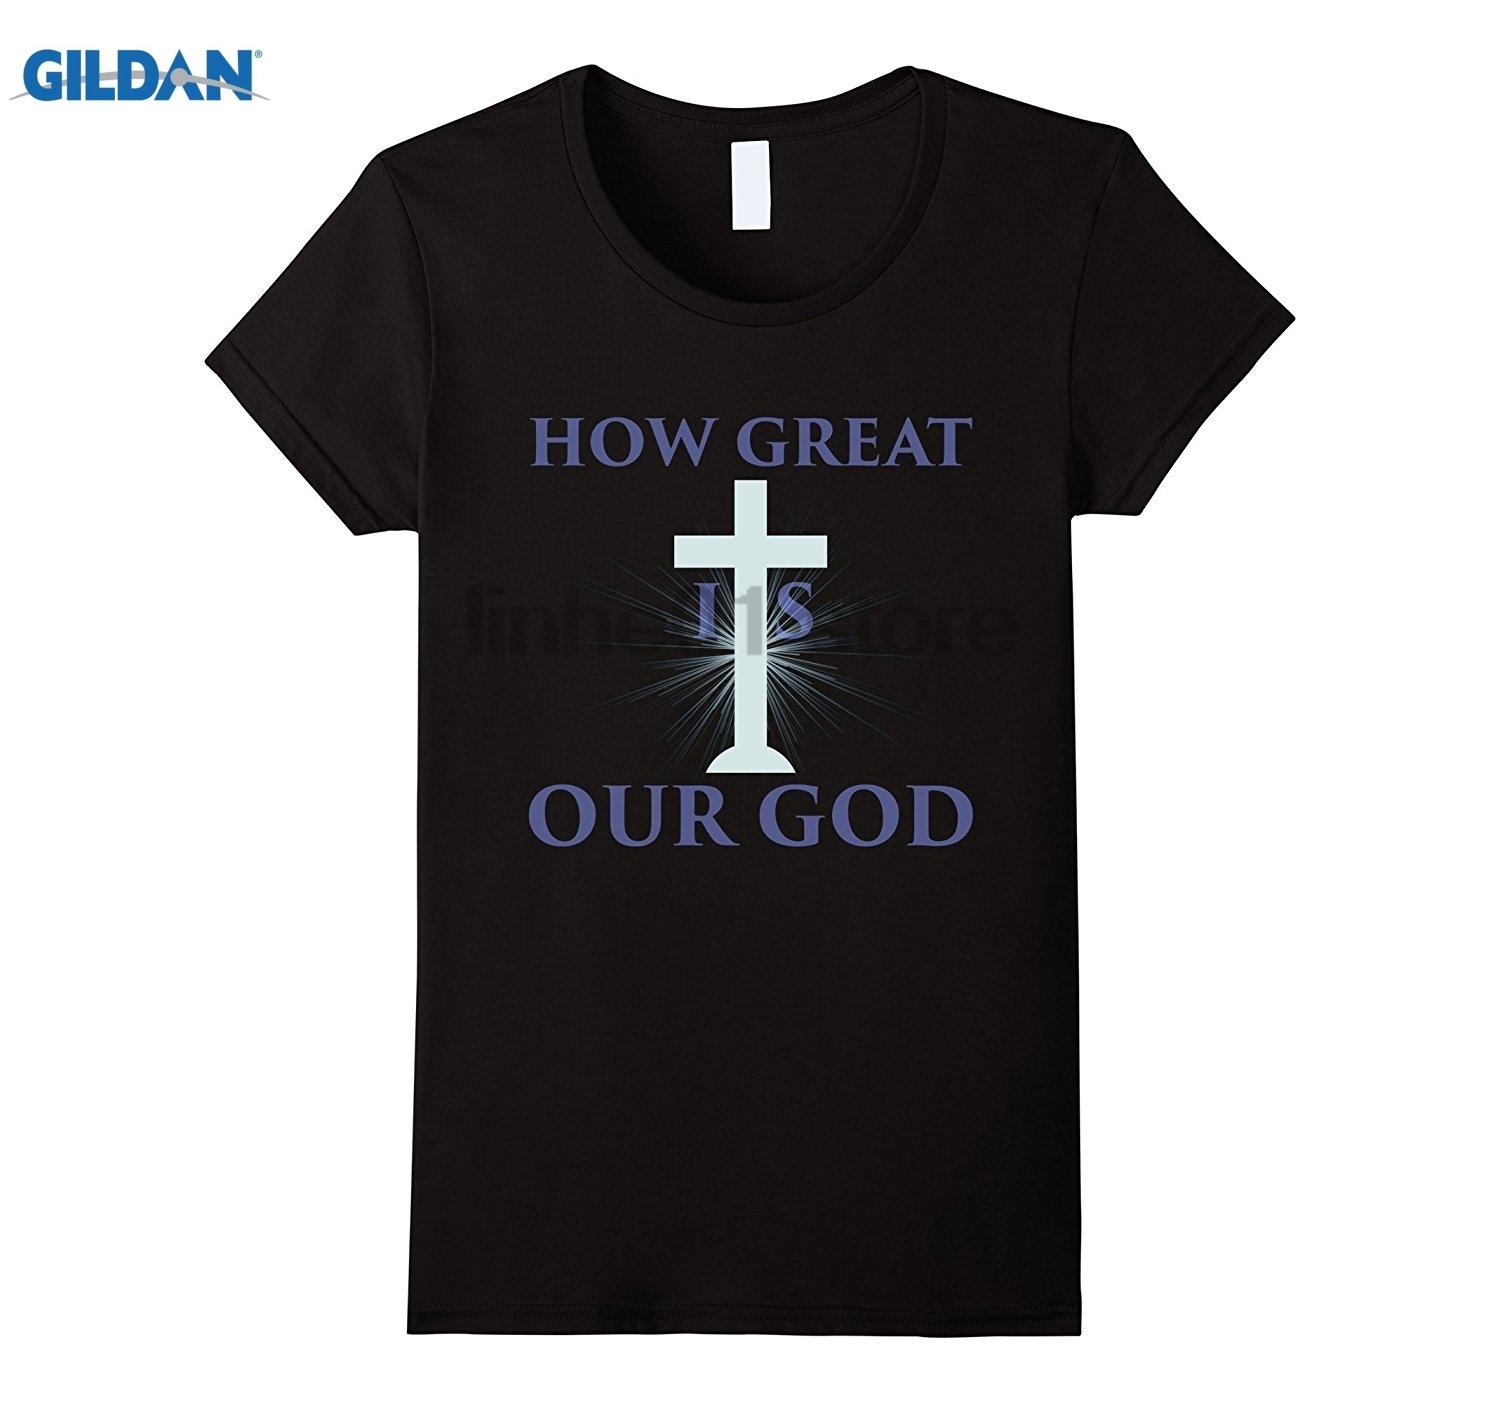 GILDAN How Great is Our God - Christian Religious T-Shirt glasses Womens T-shirt